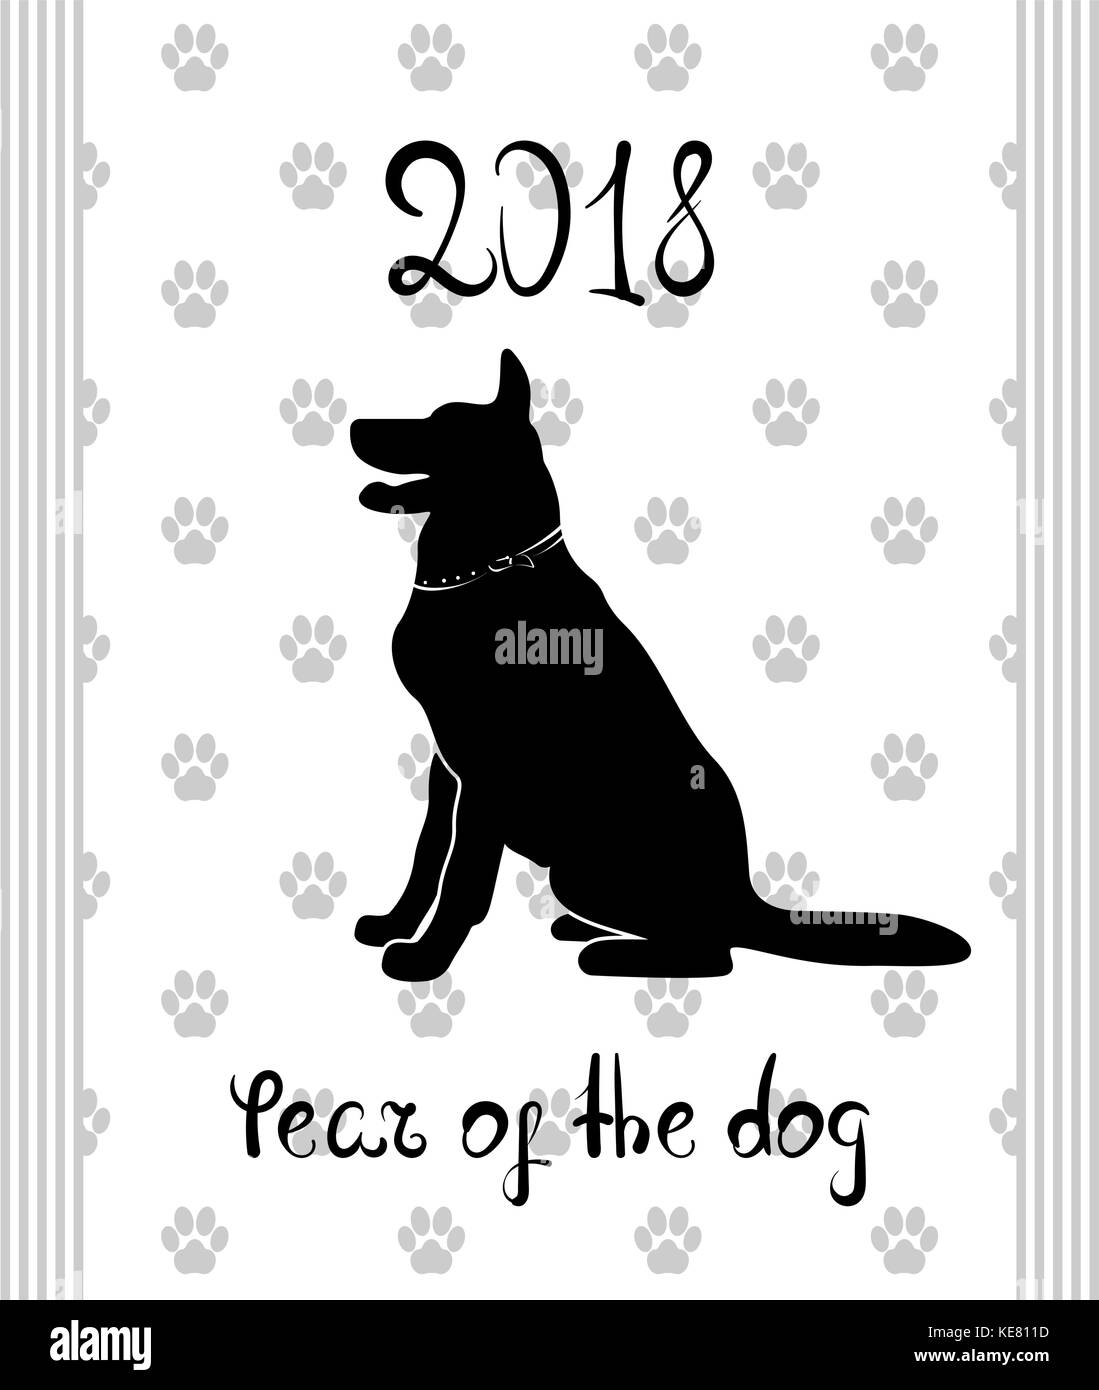 chinese new year 2018 zodiac dog happy new year card pattern art with dog hand drawn vector illustration